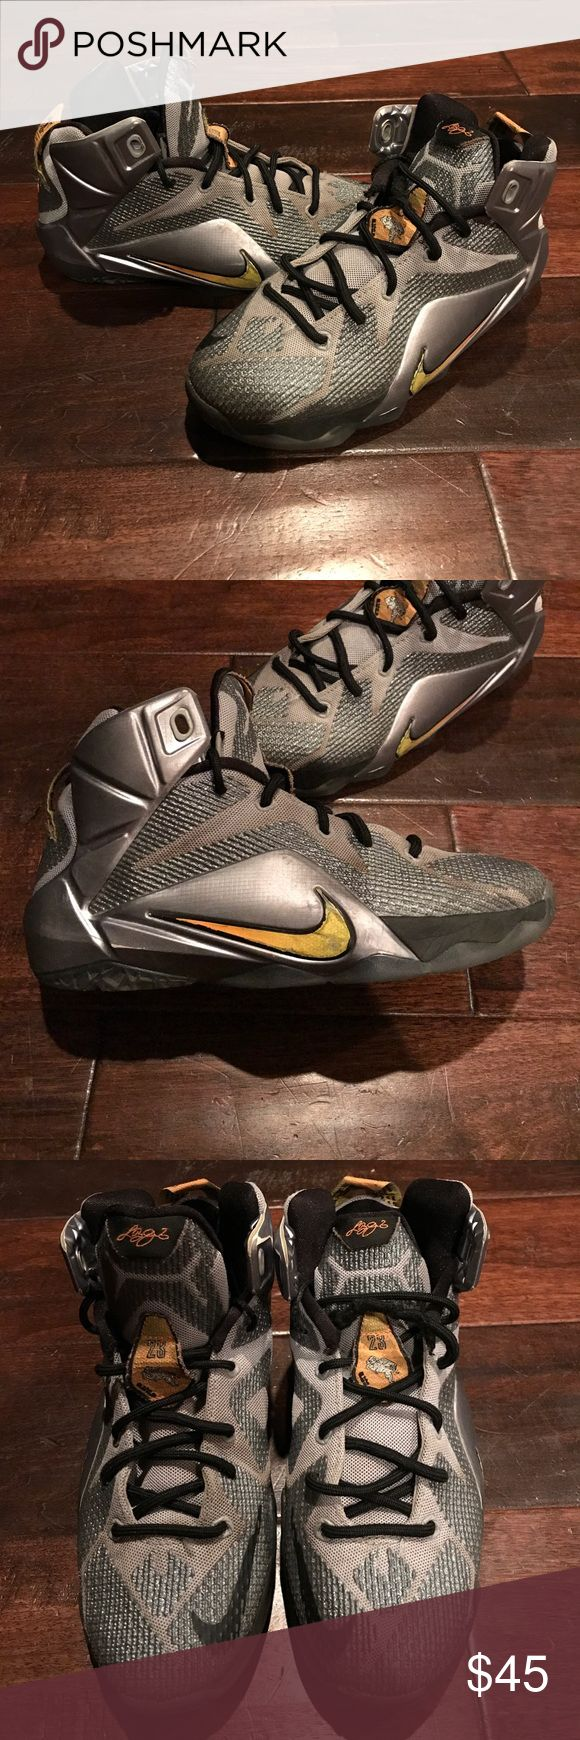 NIKE LEBRON JAMES 12 GREY BLACK SILVER YELLOW NIKE LEBRON JAMES 12 GREY BLACK SILVER YELLOW BOYS SHOES. Light wear needs new laces price reflects condition. Nike Shoes Sneakers